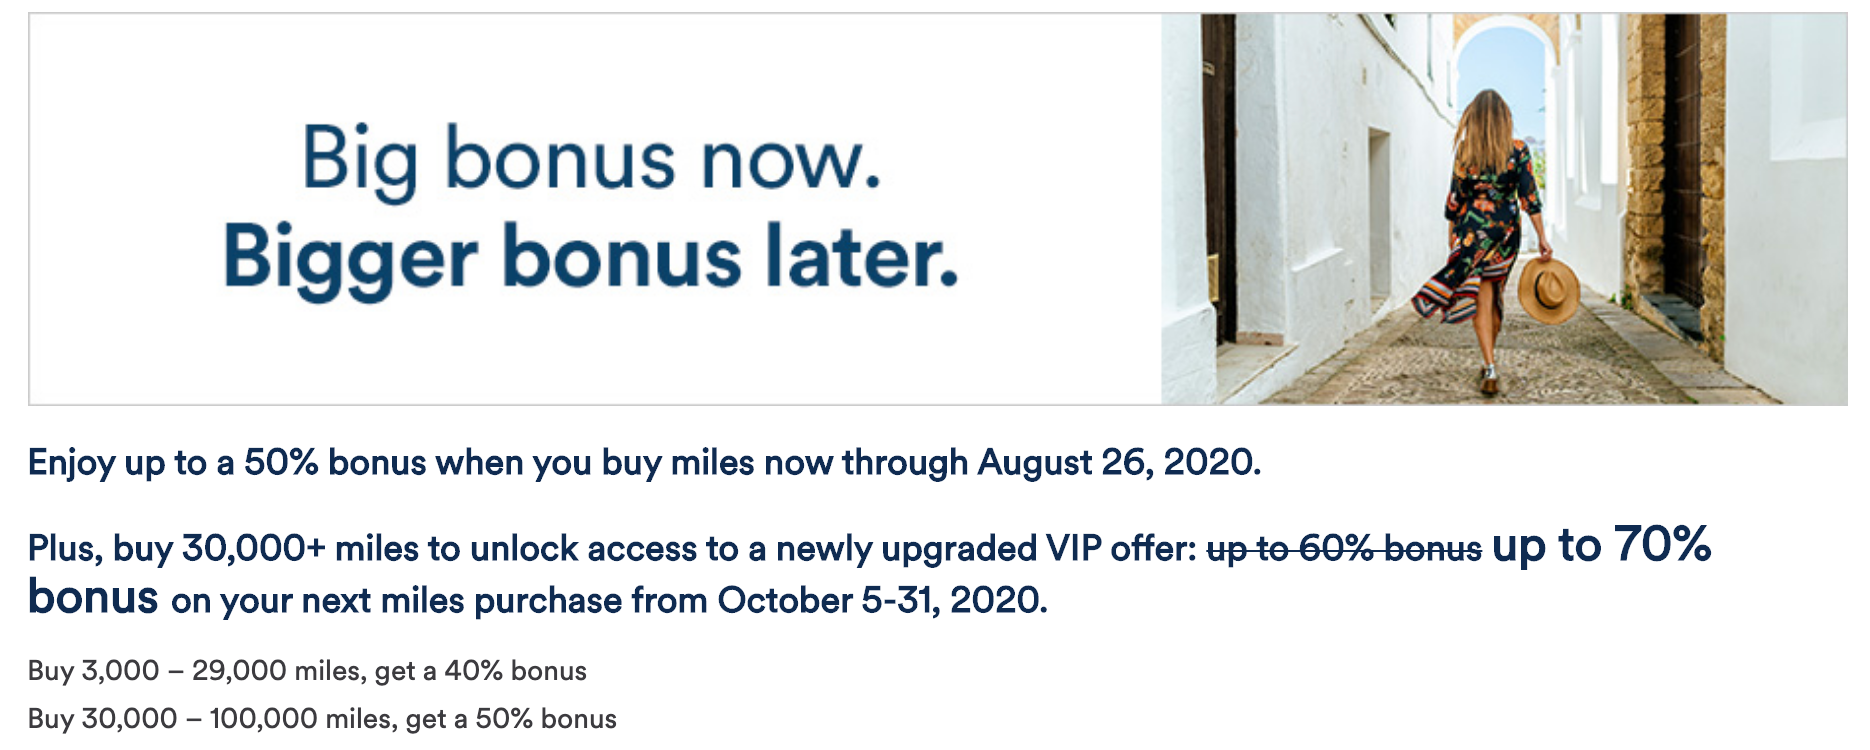 alaska bonus - Surprisingly Great Deal: Buy Alaska Miles with up to a 50% discount